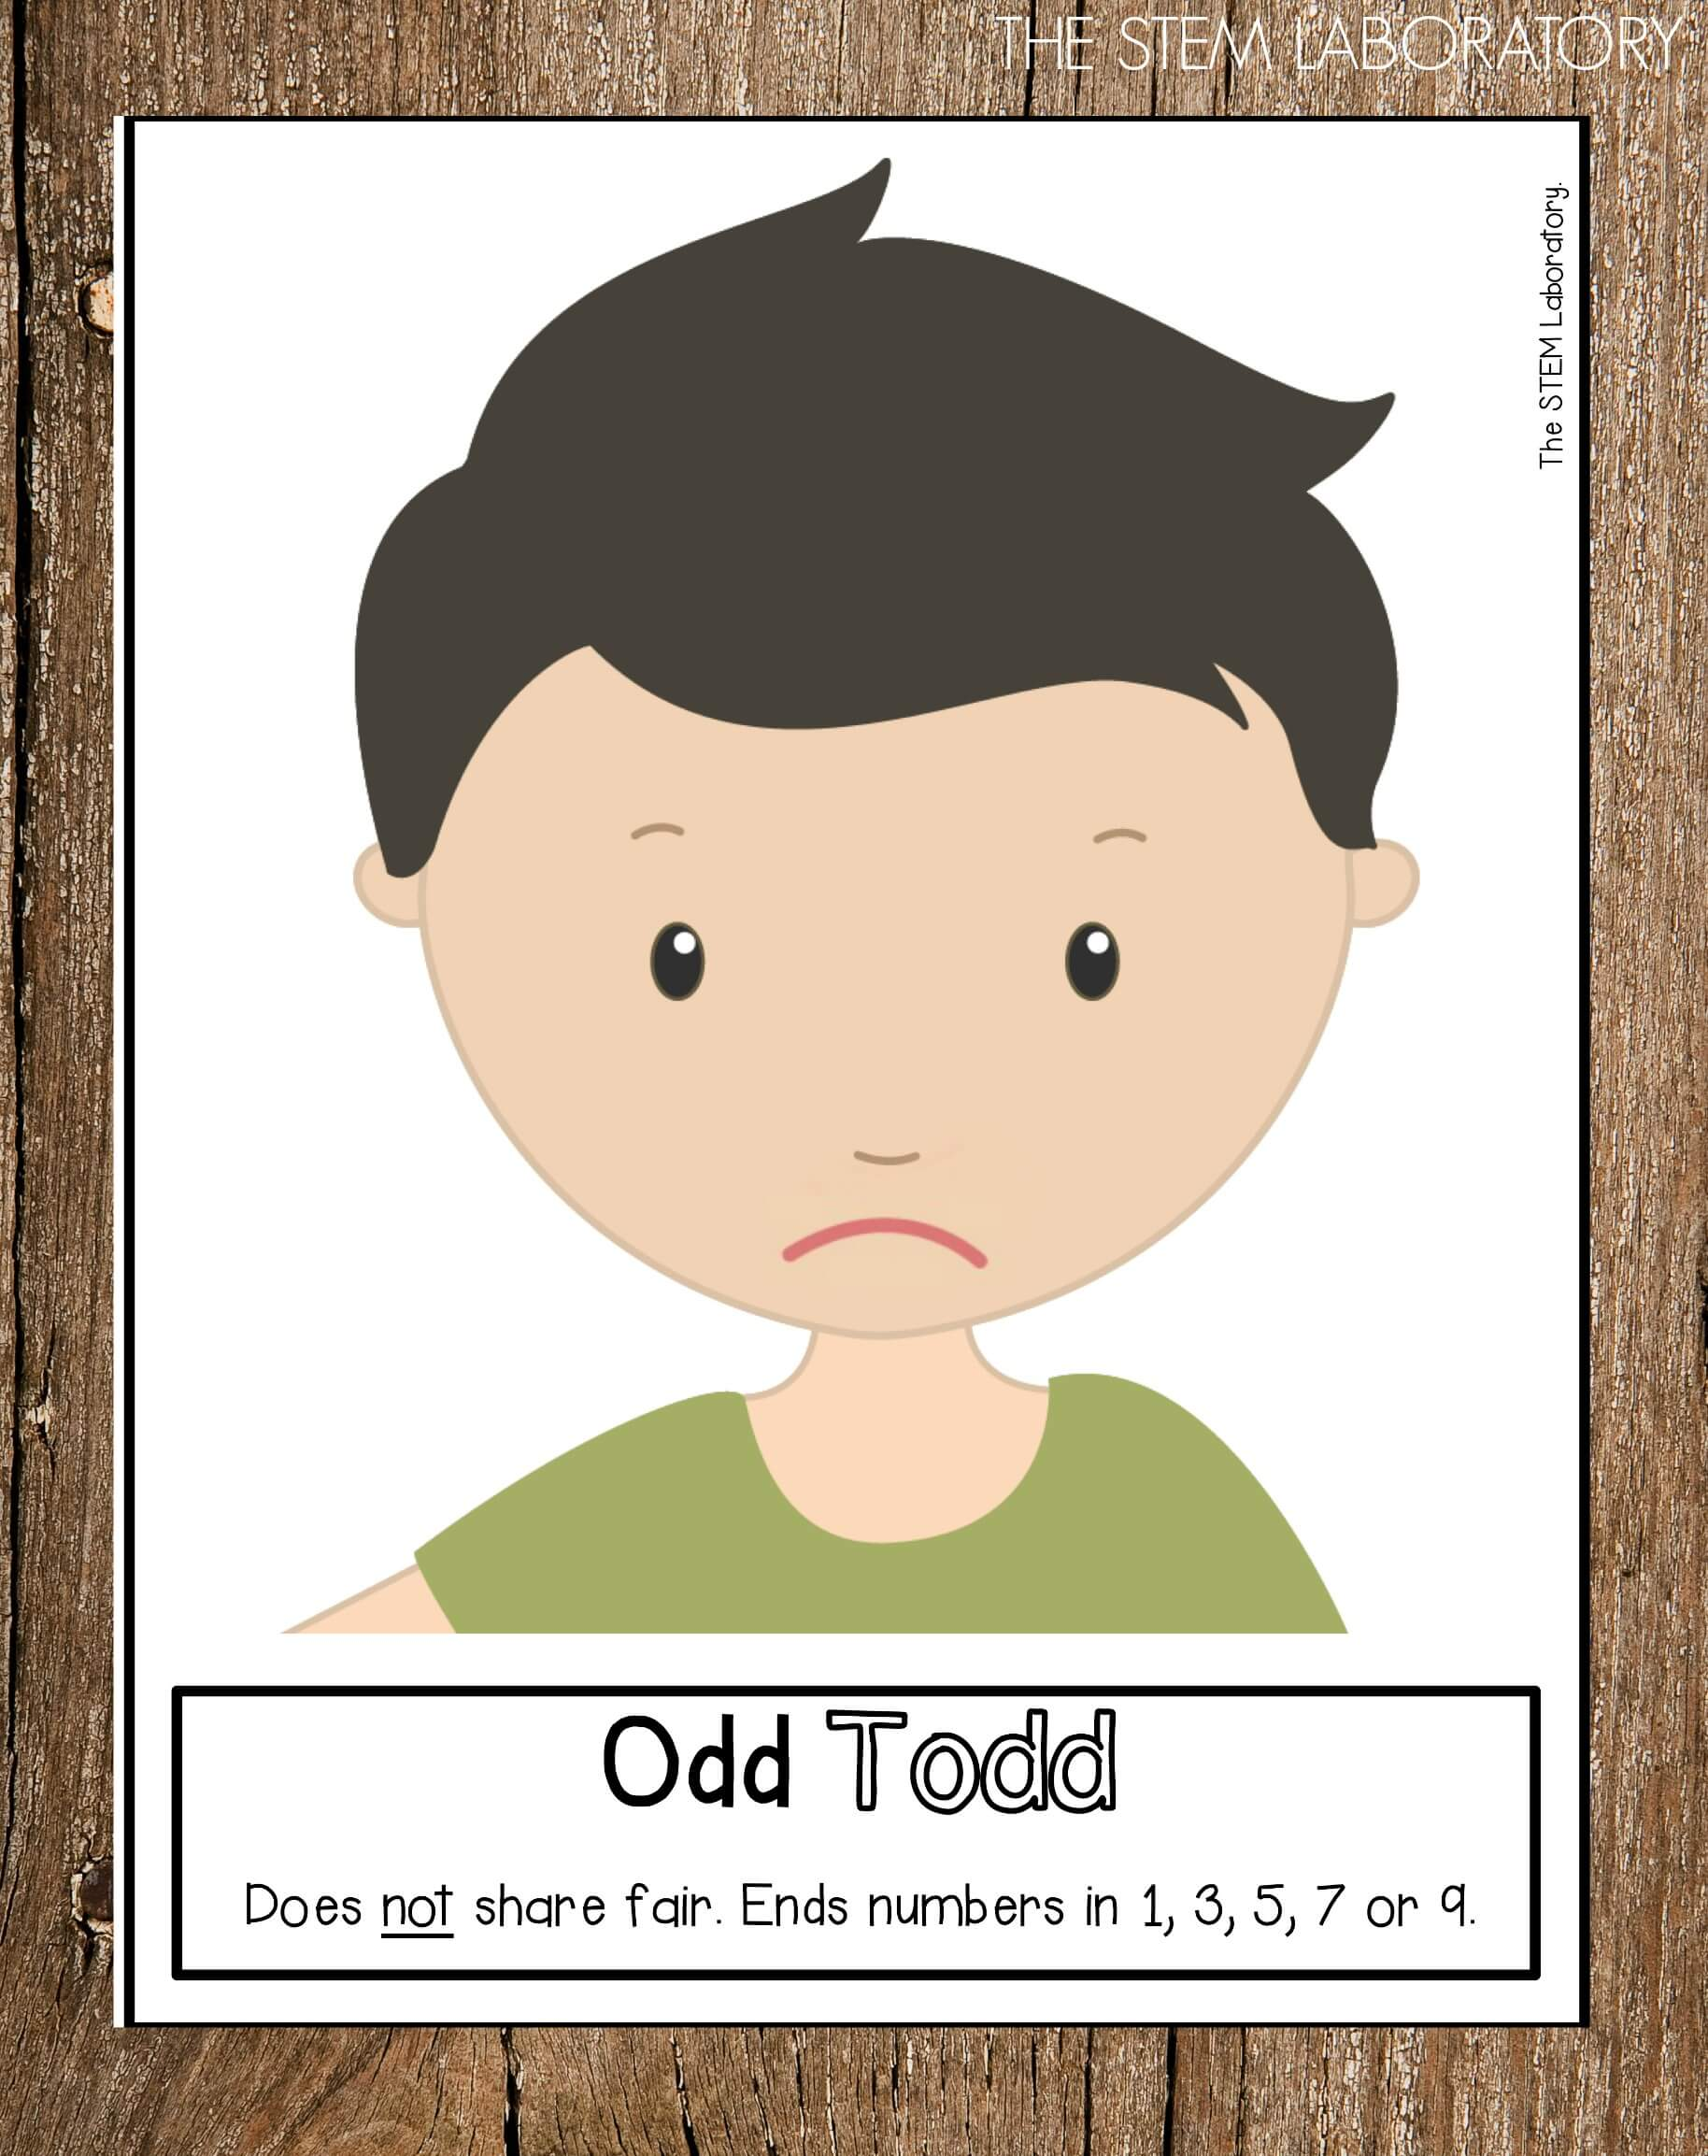 Odd Todd and Even Steven Posters - The Stem Laboratory